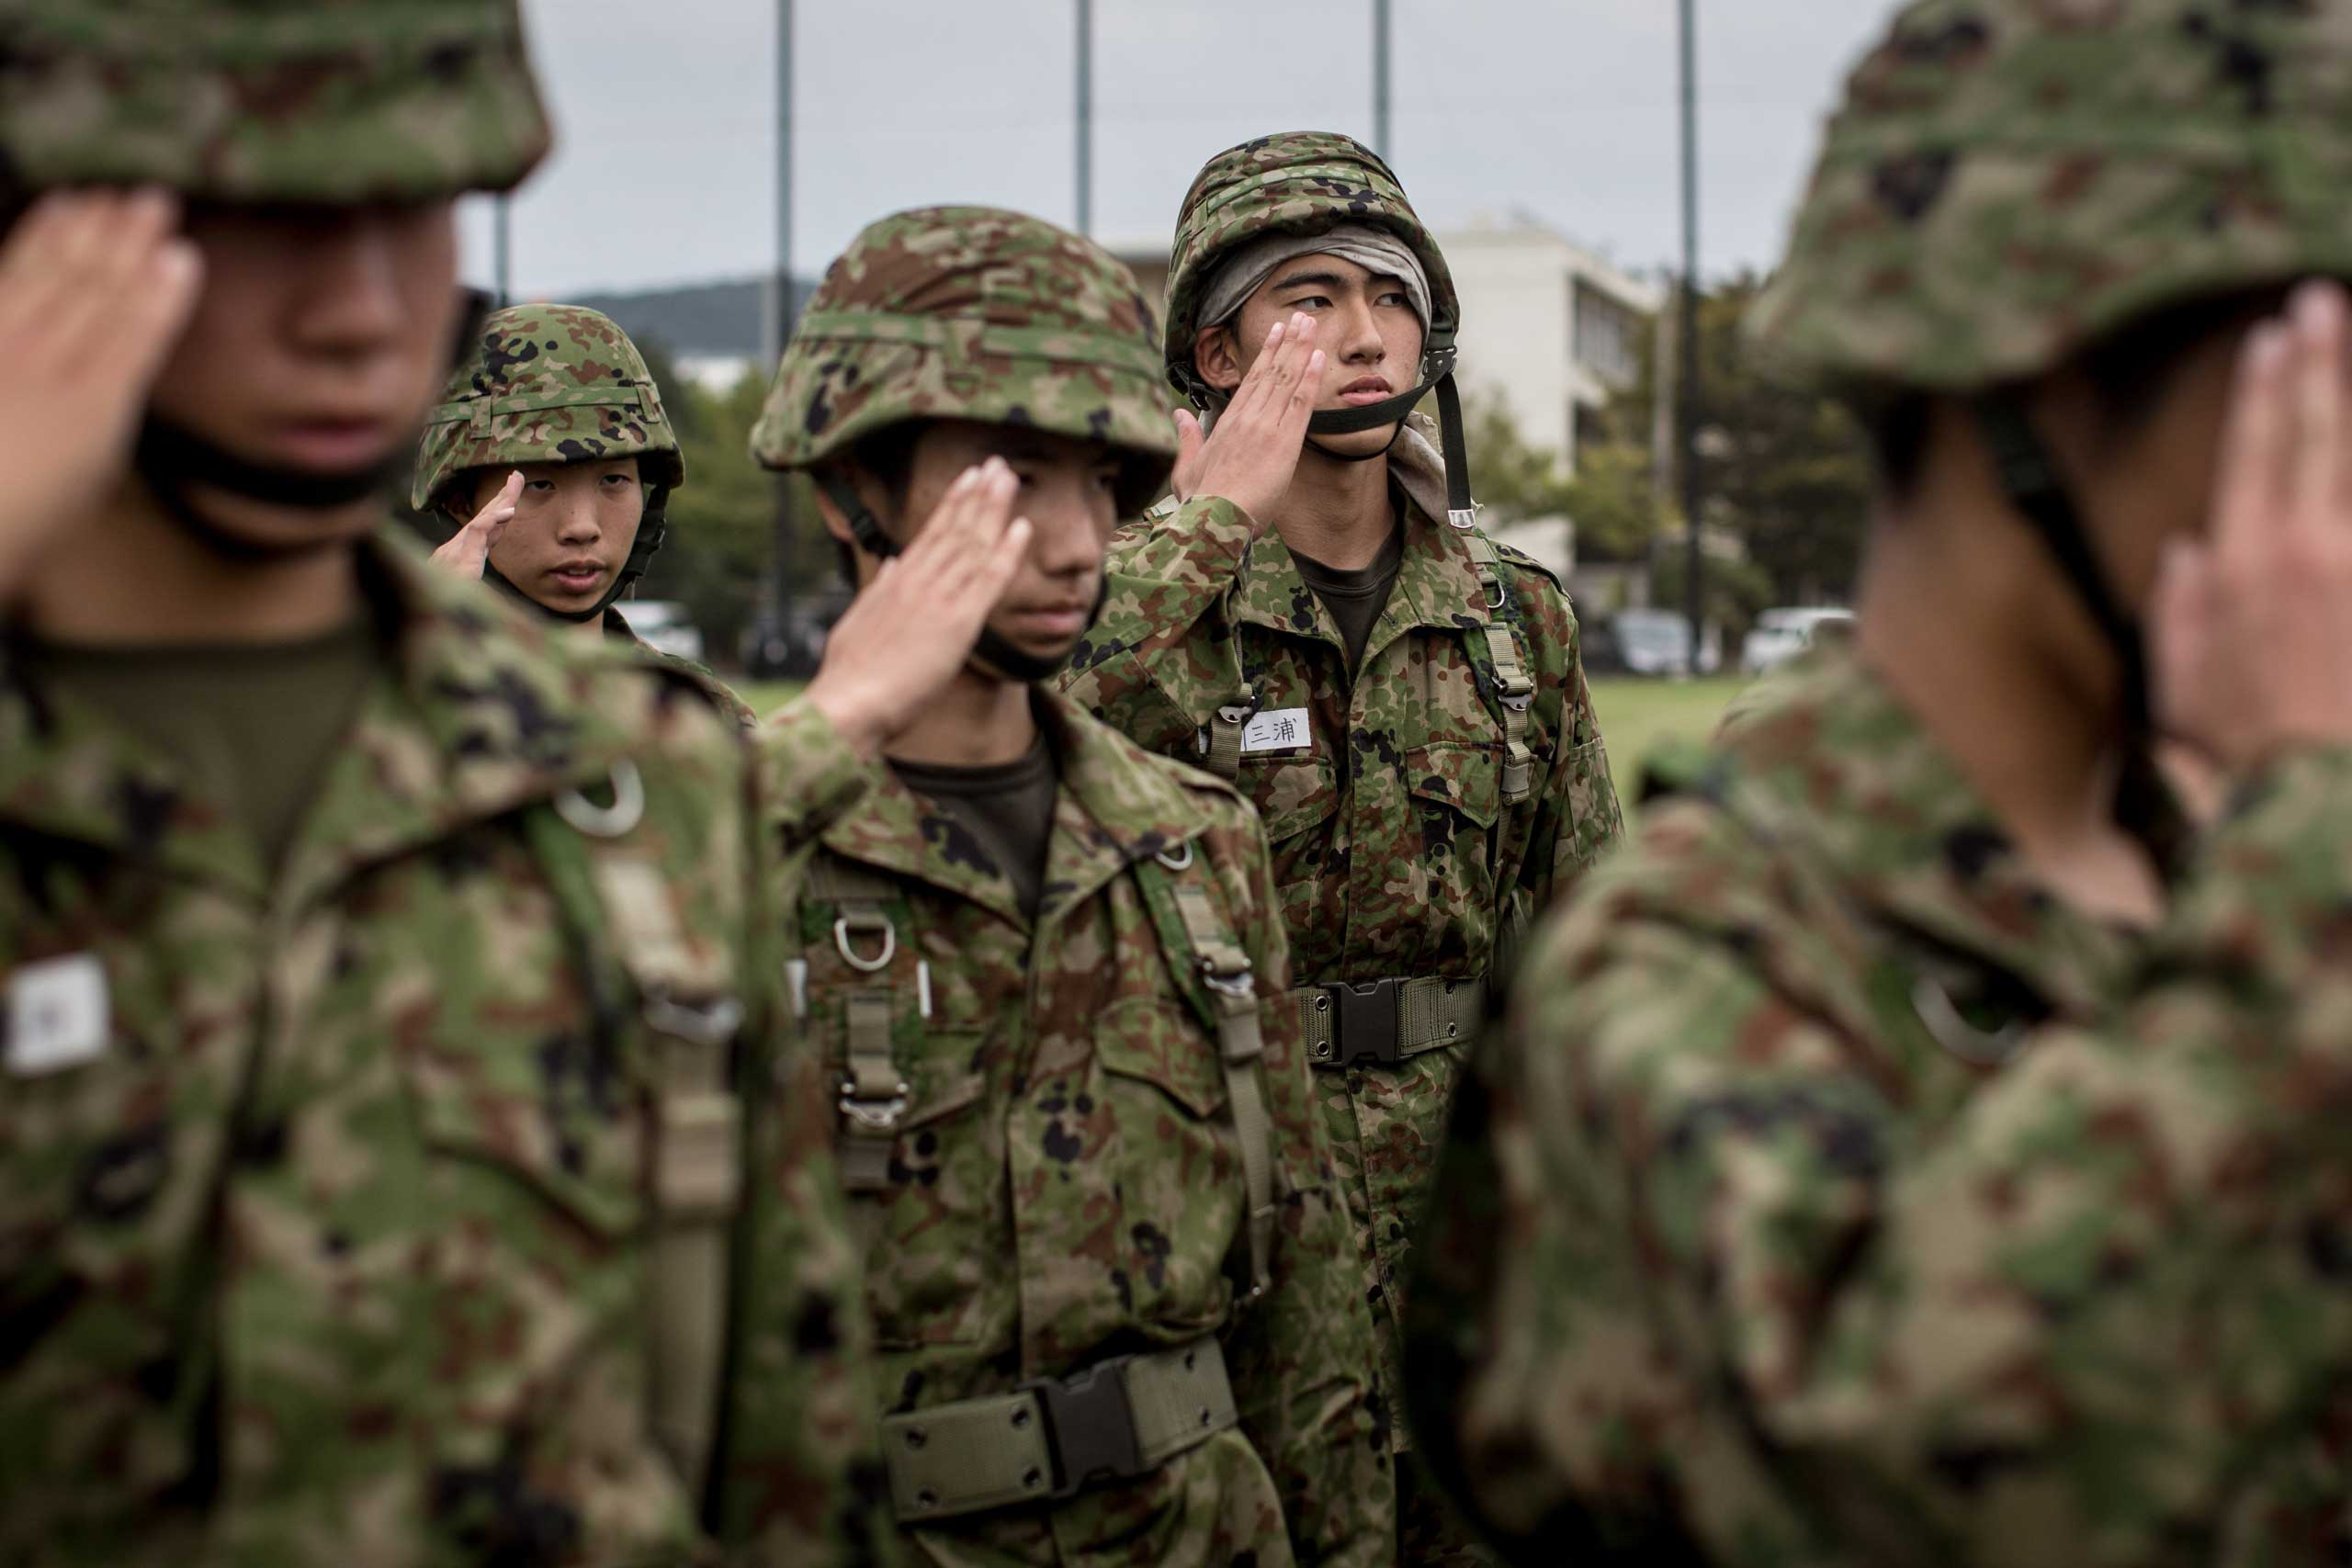 Students salute their teacher after finishing rifle training.